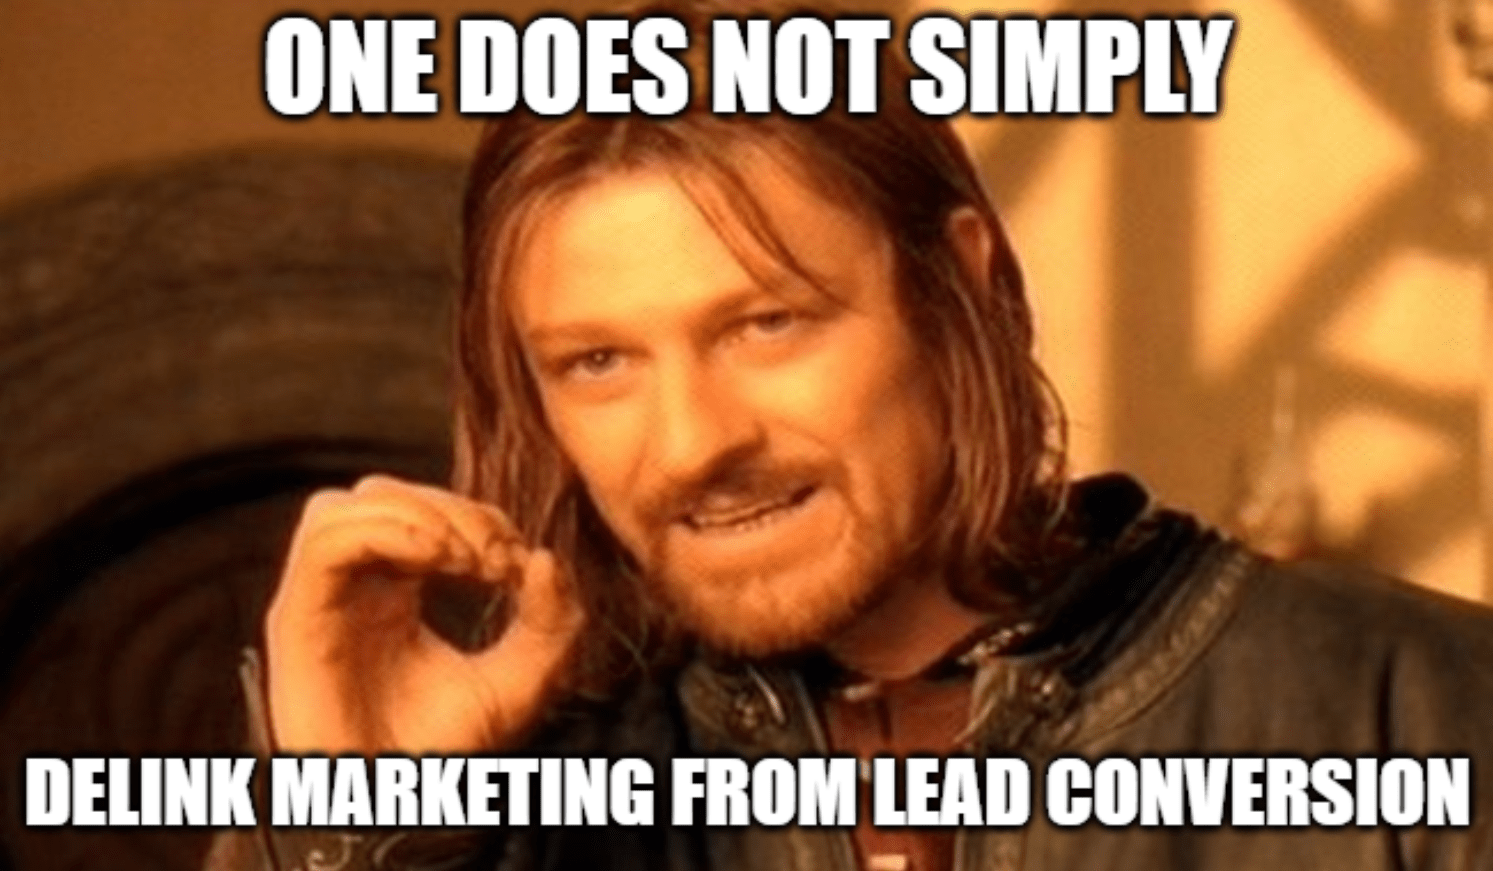 One does not simply delink marketing from lead conversion